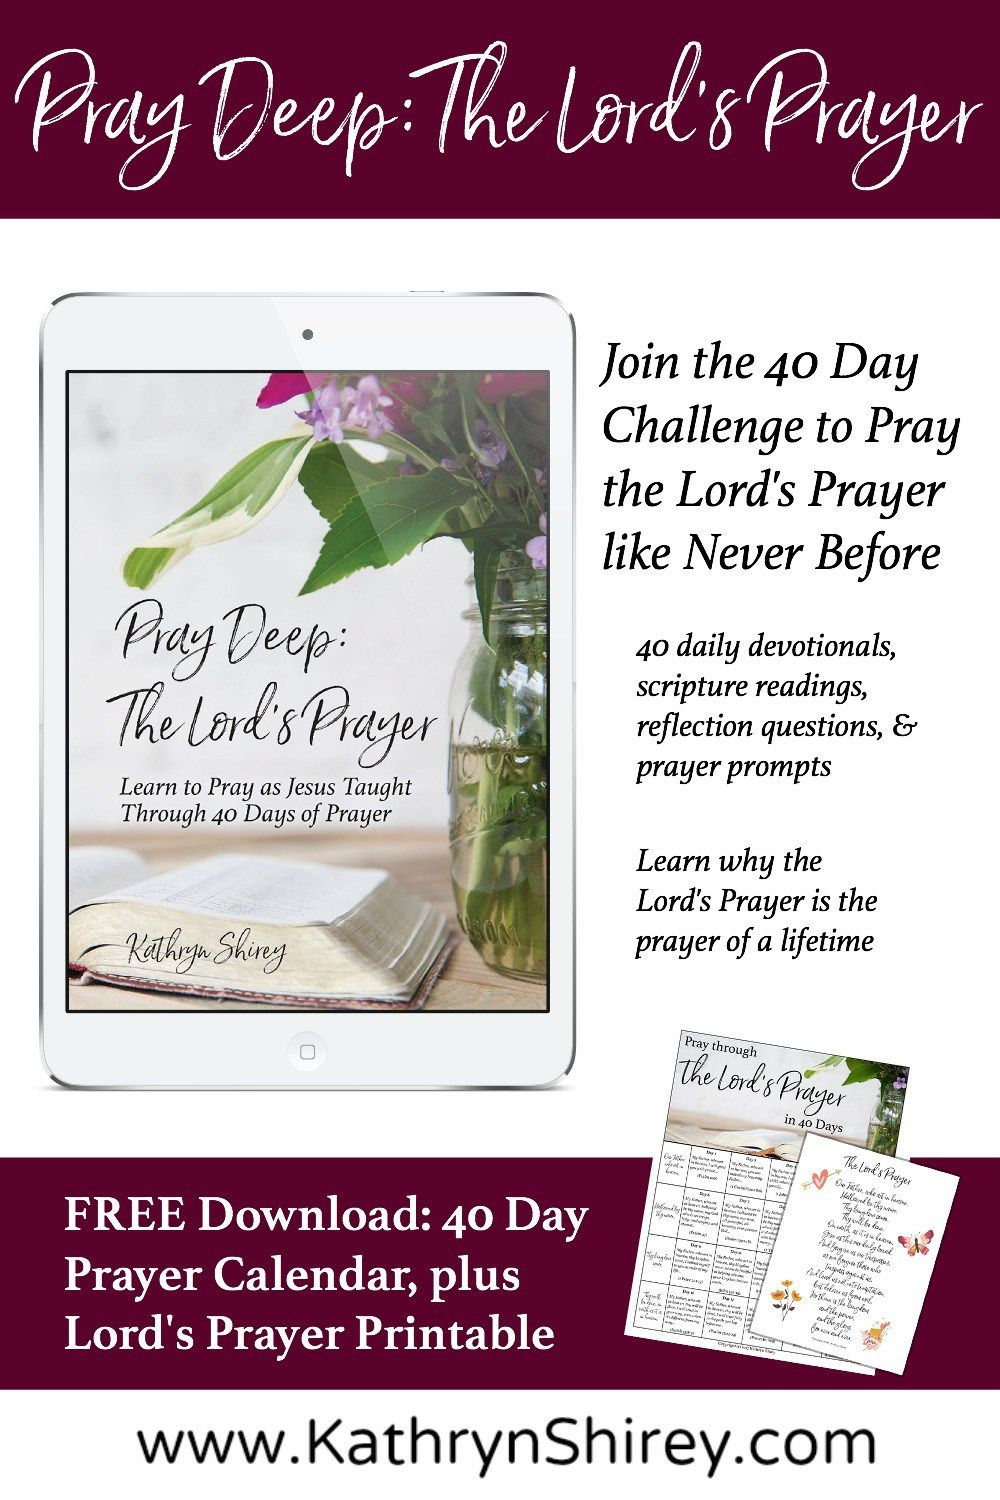 7 Steps To Transformational Change That Lasts The Lords Prayer Prayer Line Learning To Pray